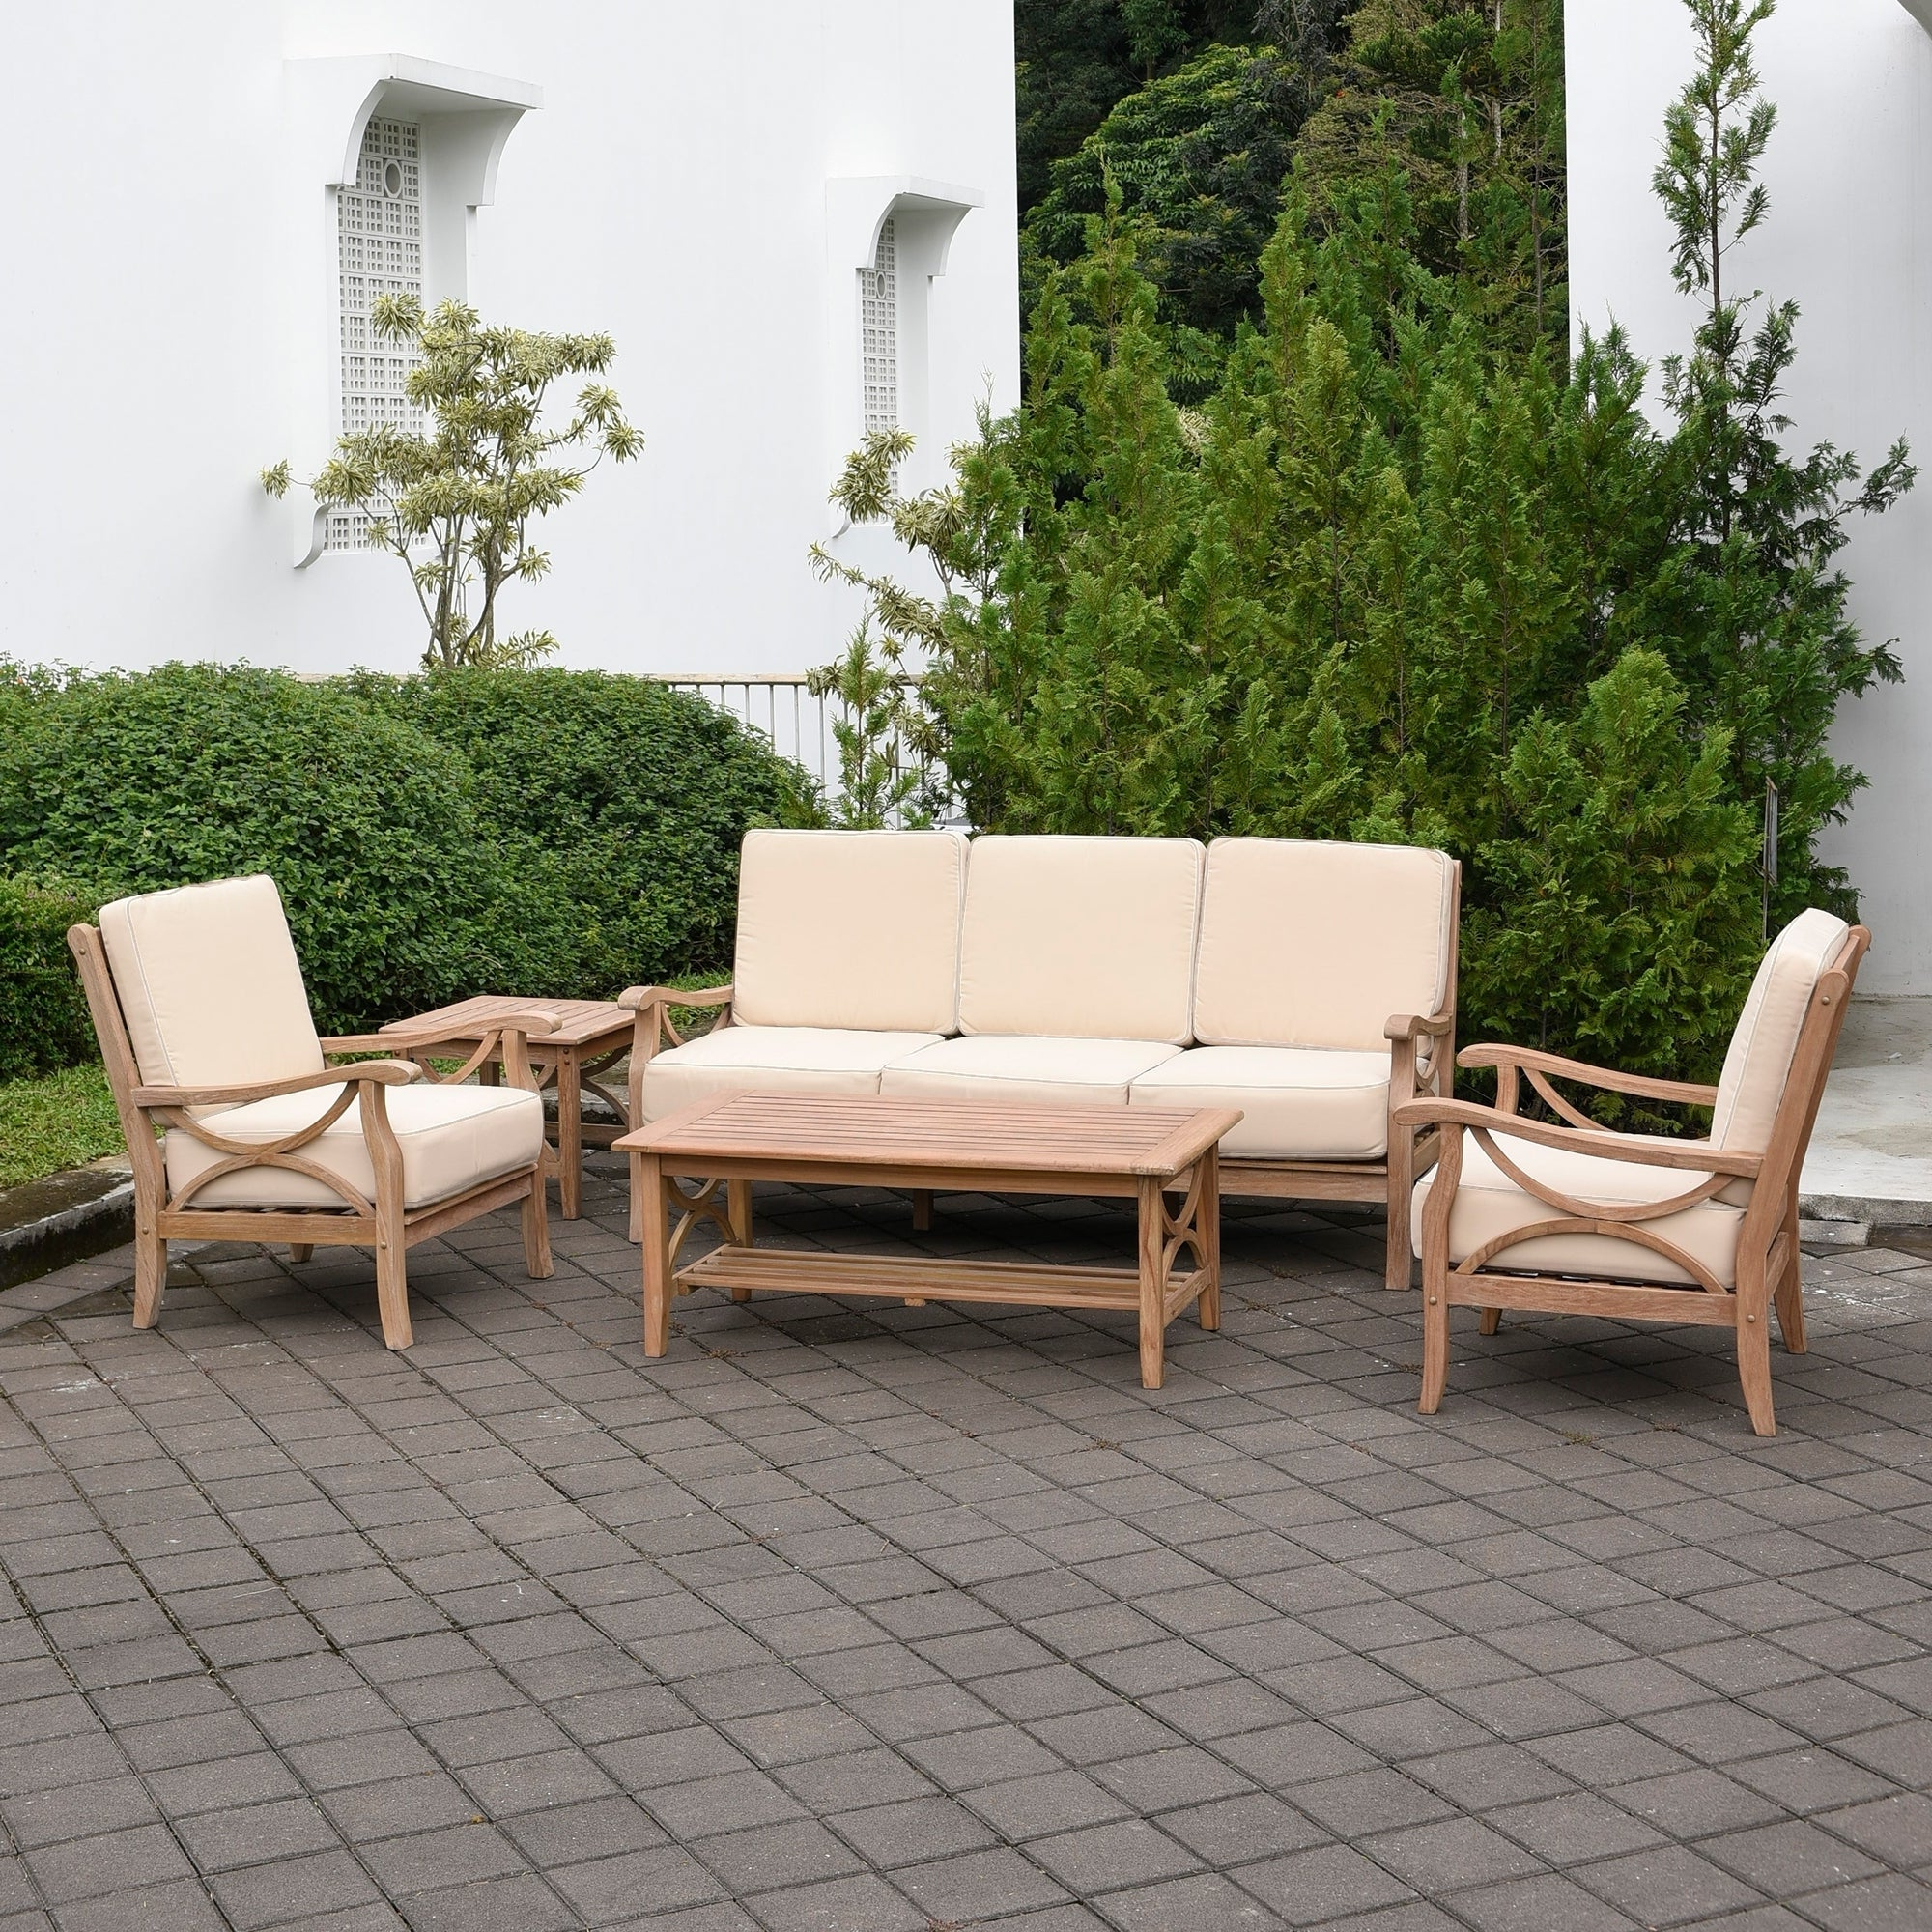 Montford Teak Patio Sofas With Cushions In Famous Havenside Home Delray 5 Piece Teak Patio Conversation Set (View 11 of 20)